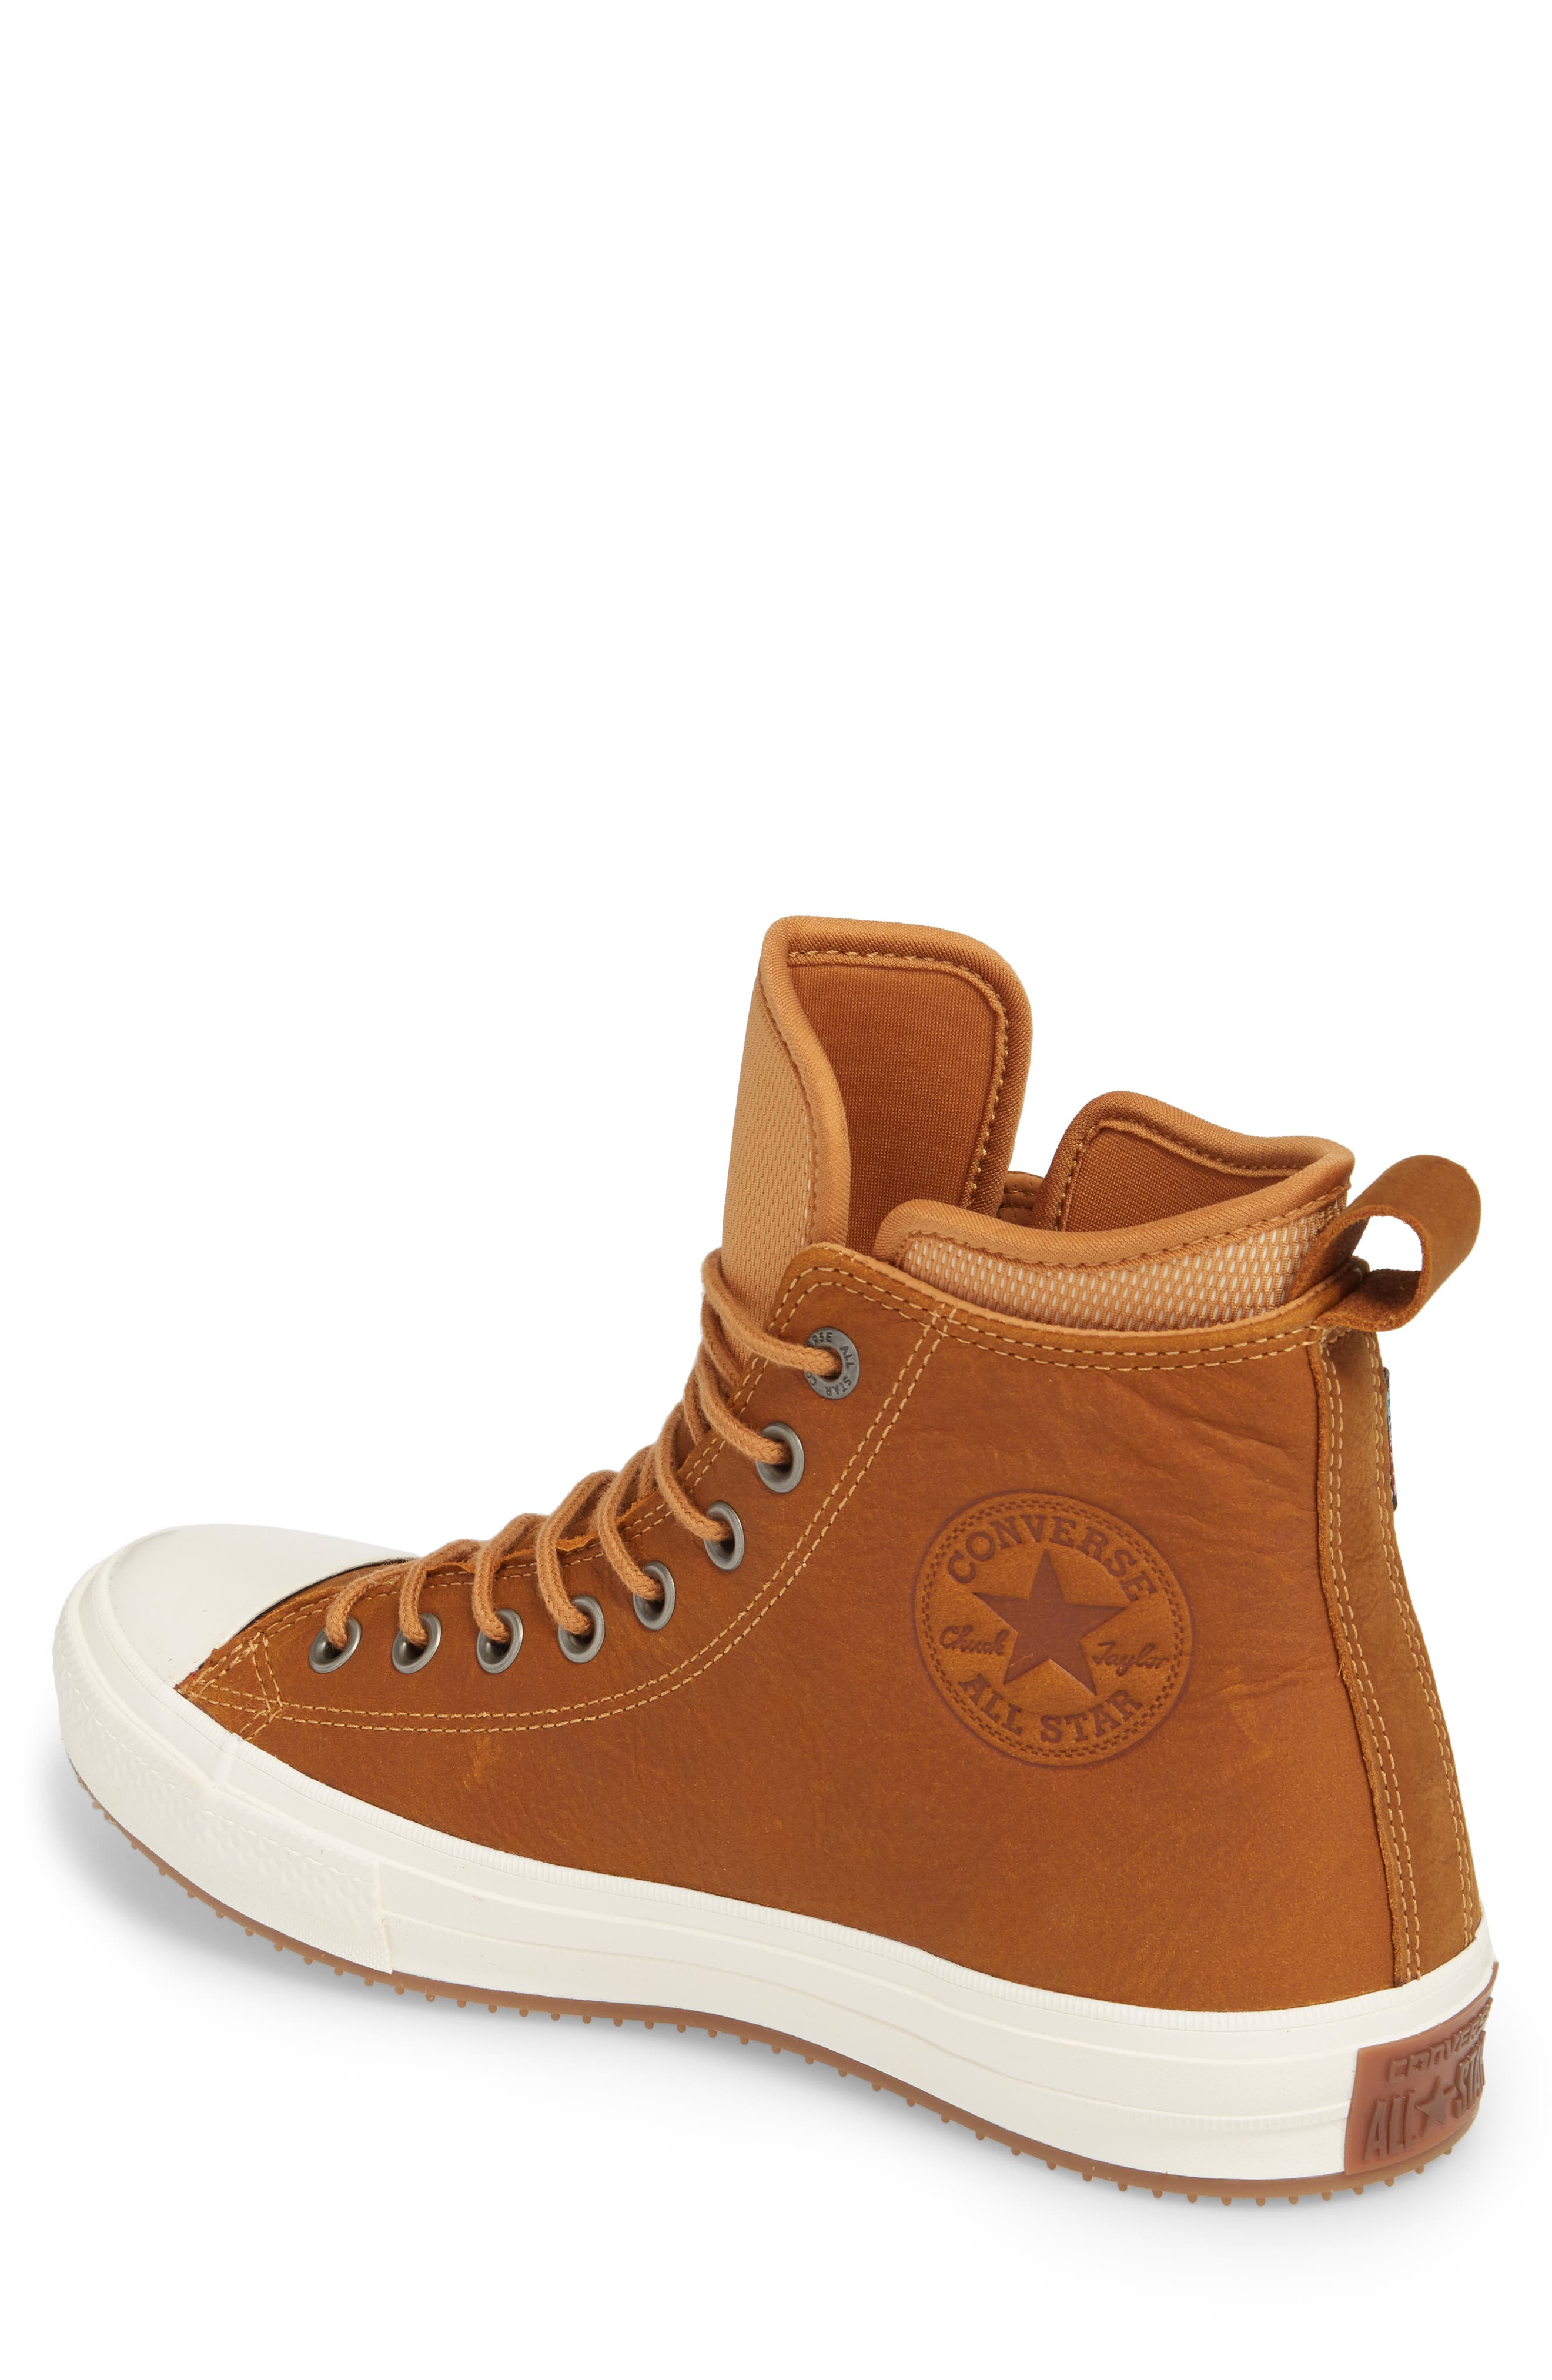 Chuck Taylor<sup>®</sup> All Star<sup>®</sup> Waterproof Sneaker,                             Alternate thumbnail 2, color,                             237